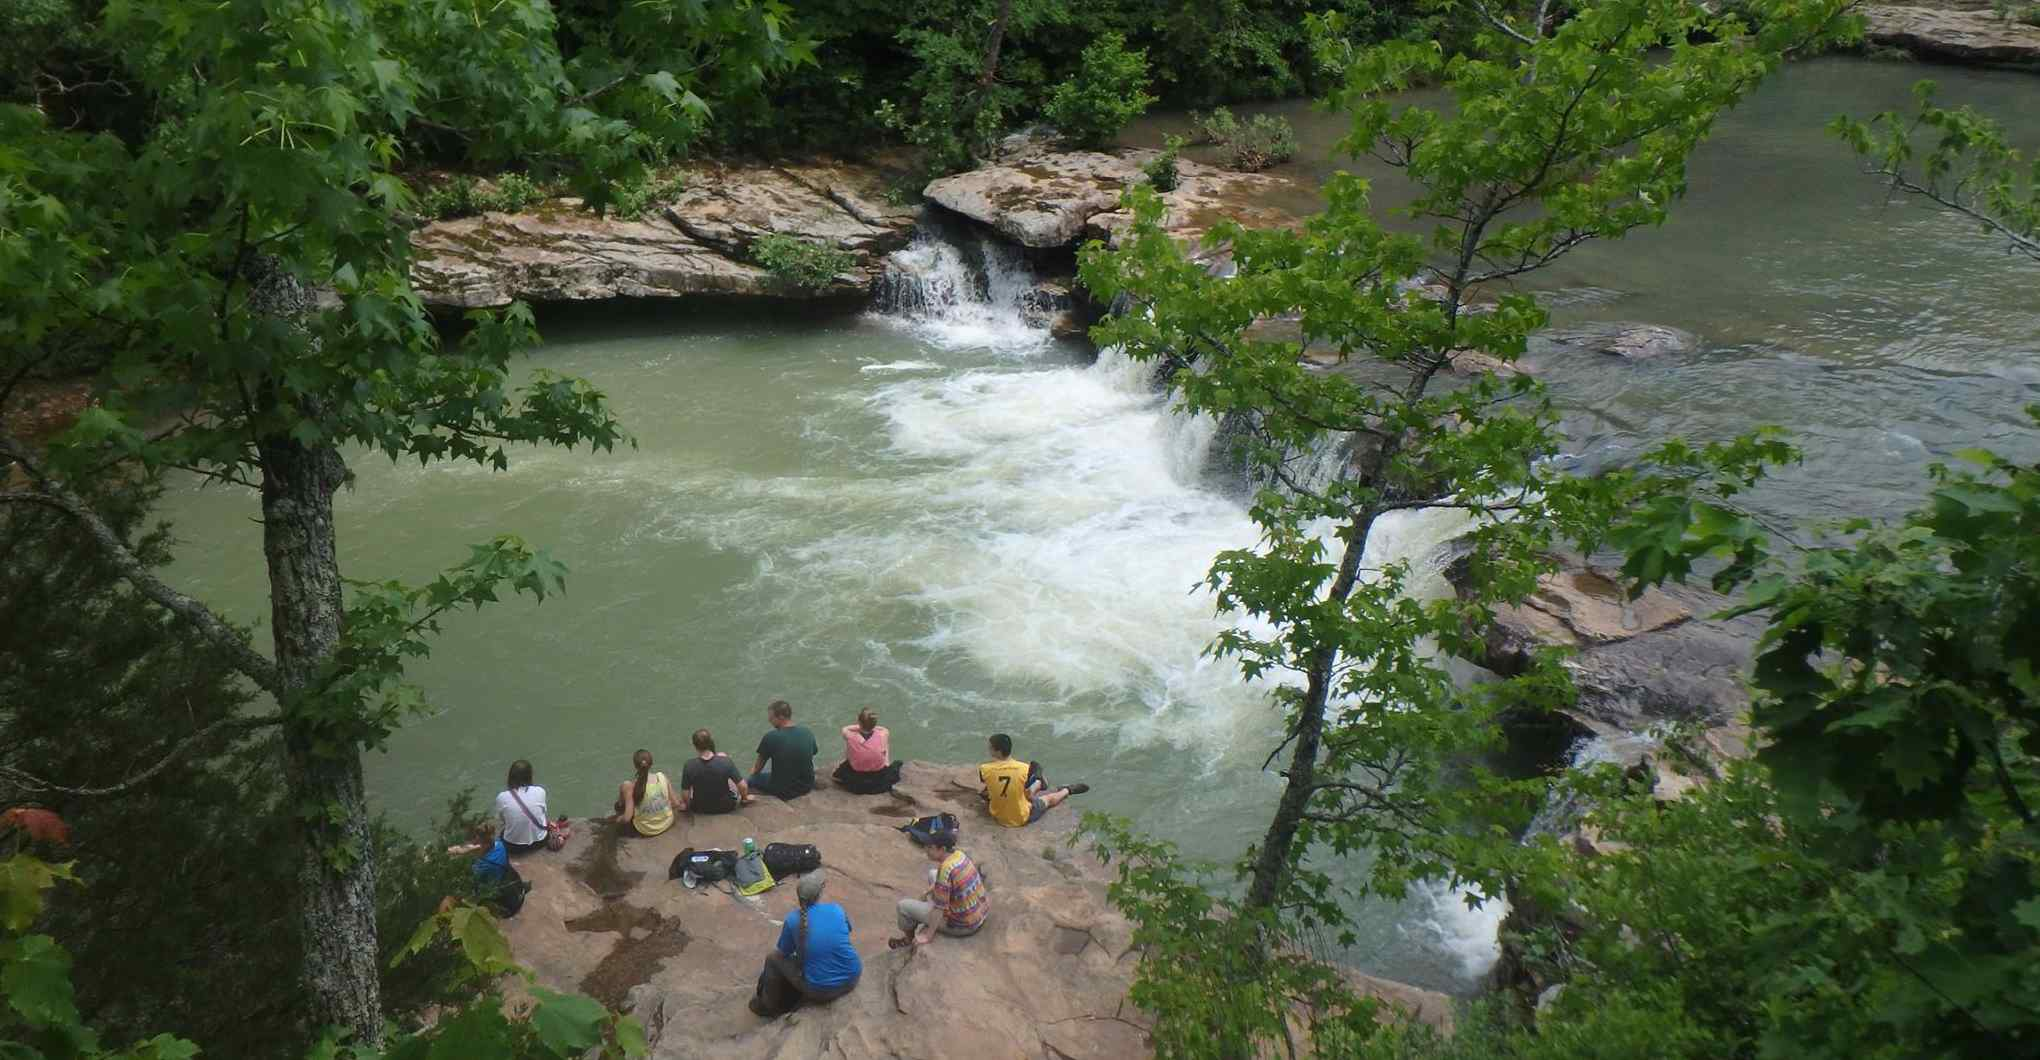 University of Arkansas REU Research Experience for Undergraduates field trip to King's River Falls